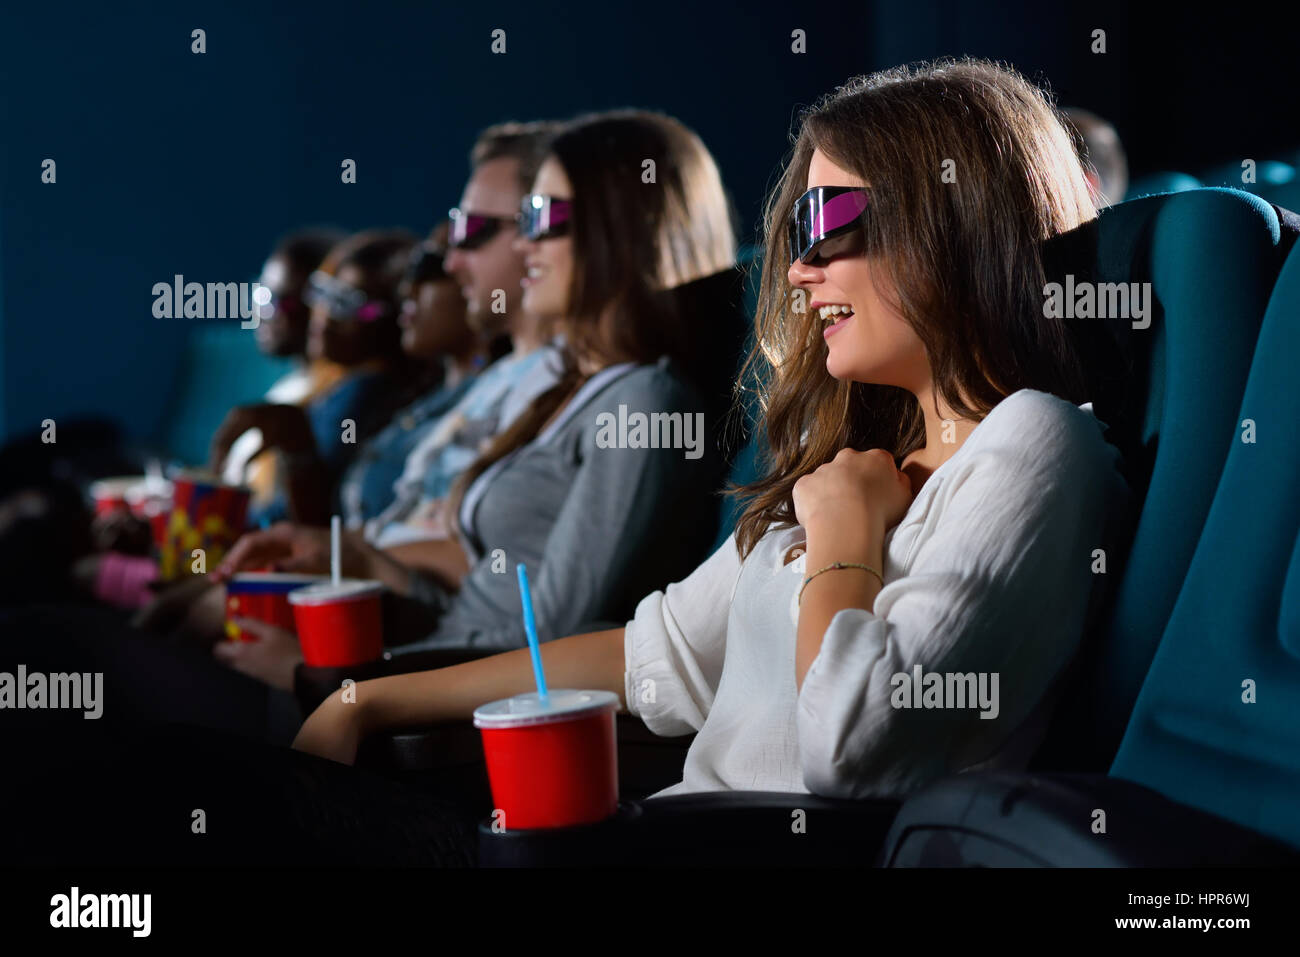 Her new favorite comedy. Cropped closeup shot of a cheerful young woman laughing while enjoying a comedy movie at - Stock Image